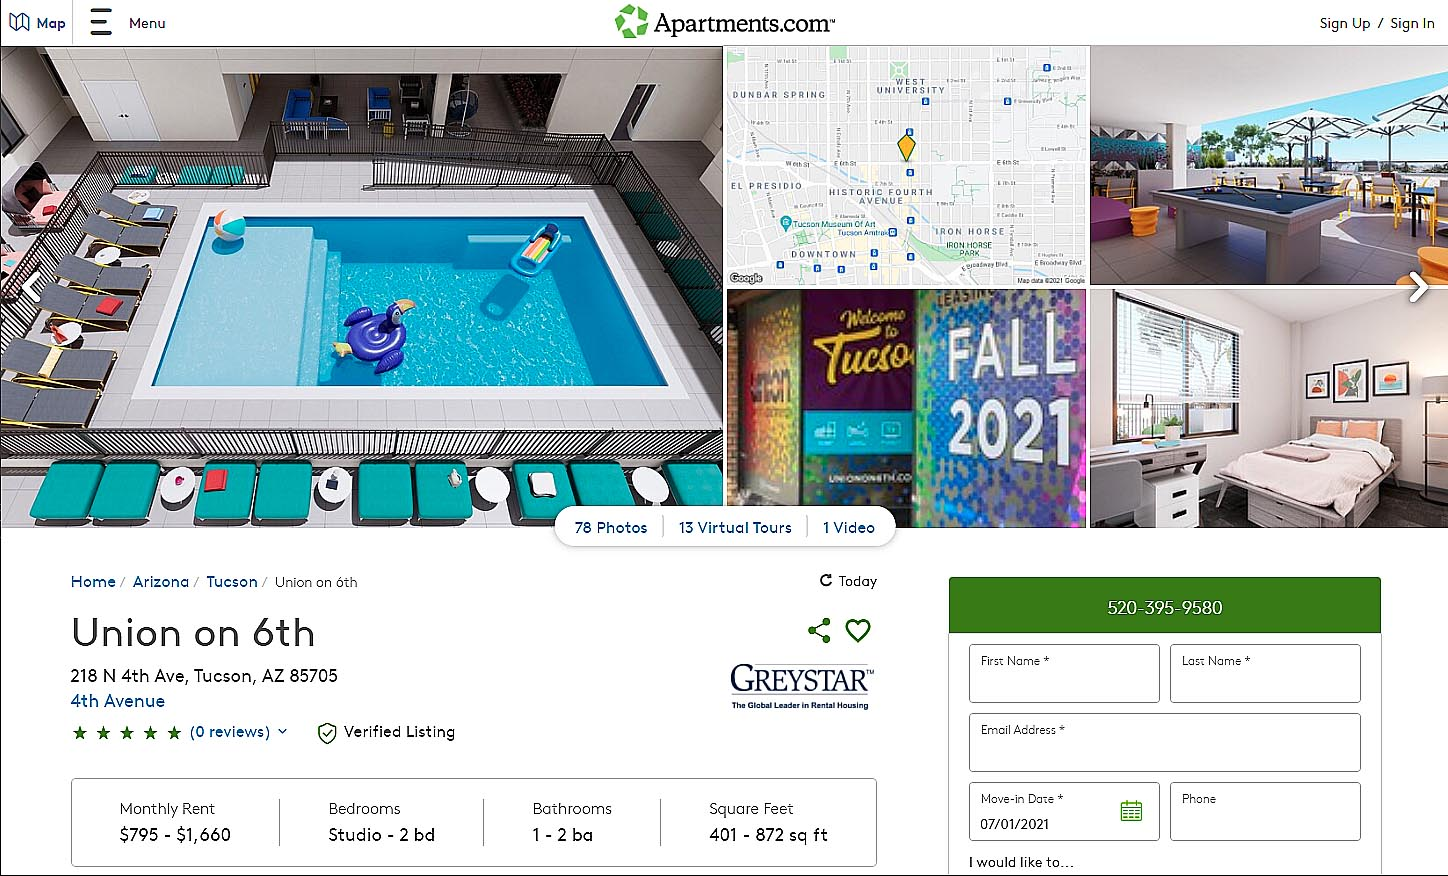 Shows our graphics and virtual tours up on Apartments.com